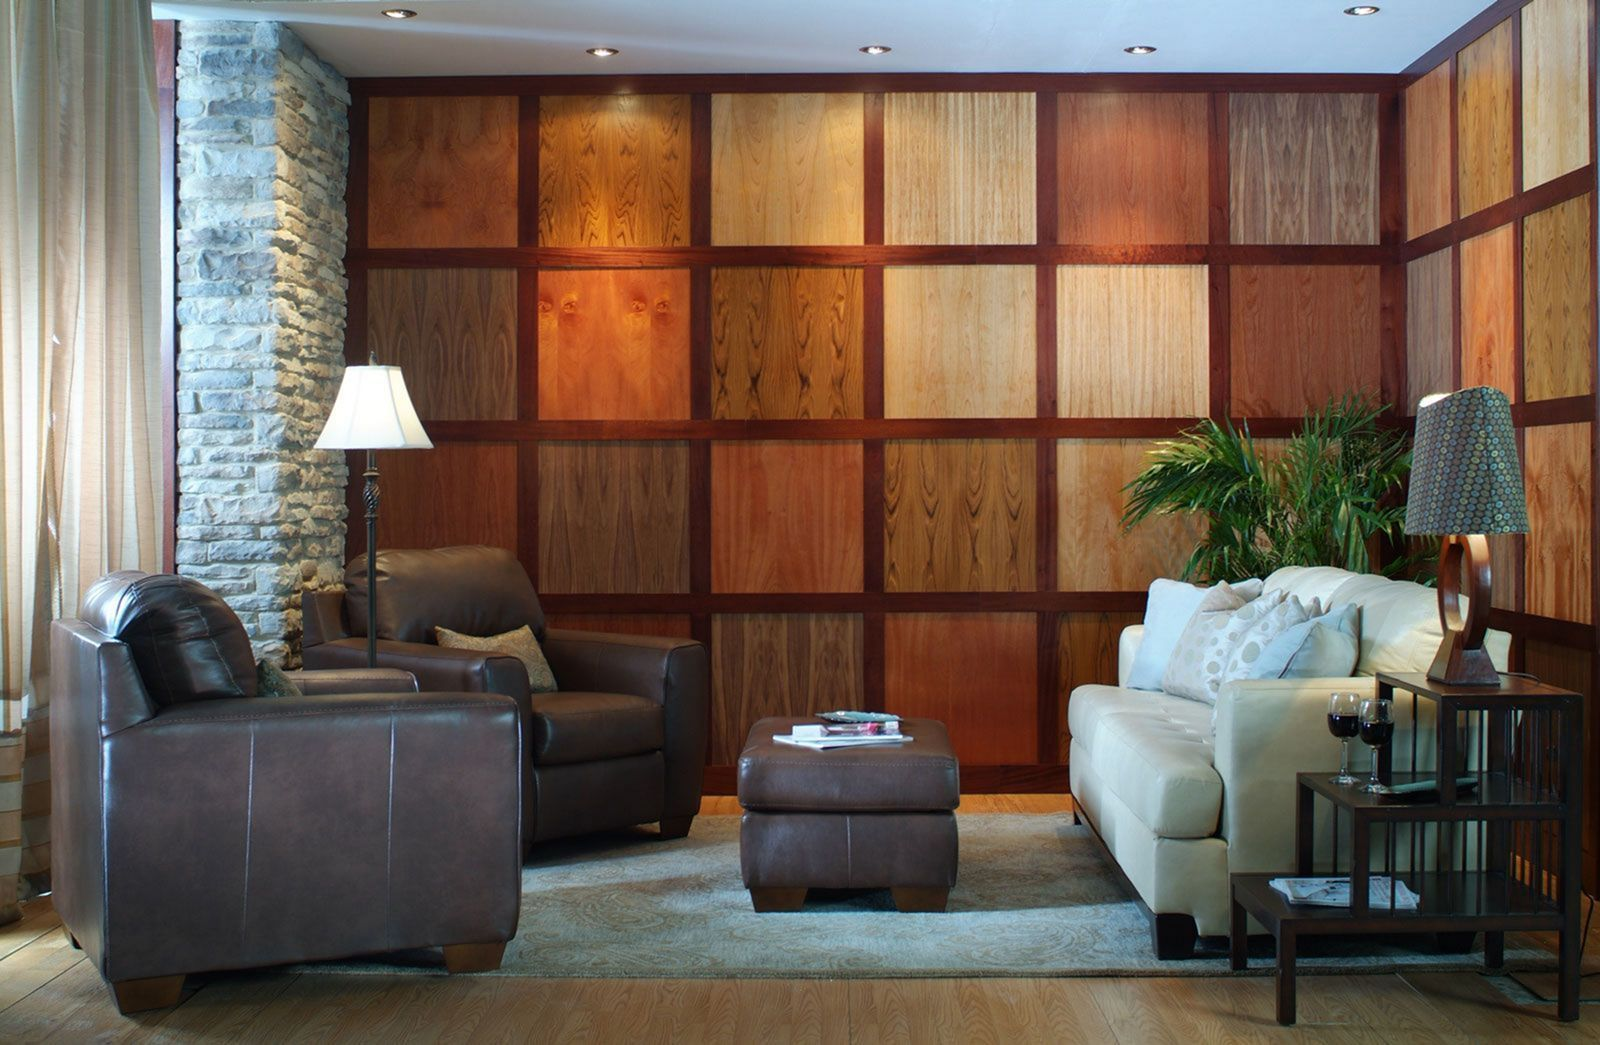 37 Stunning Modern Wood Wall Decorations For Elegant Home Interior